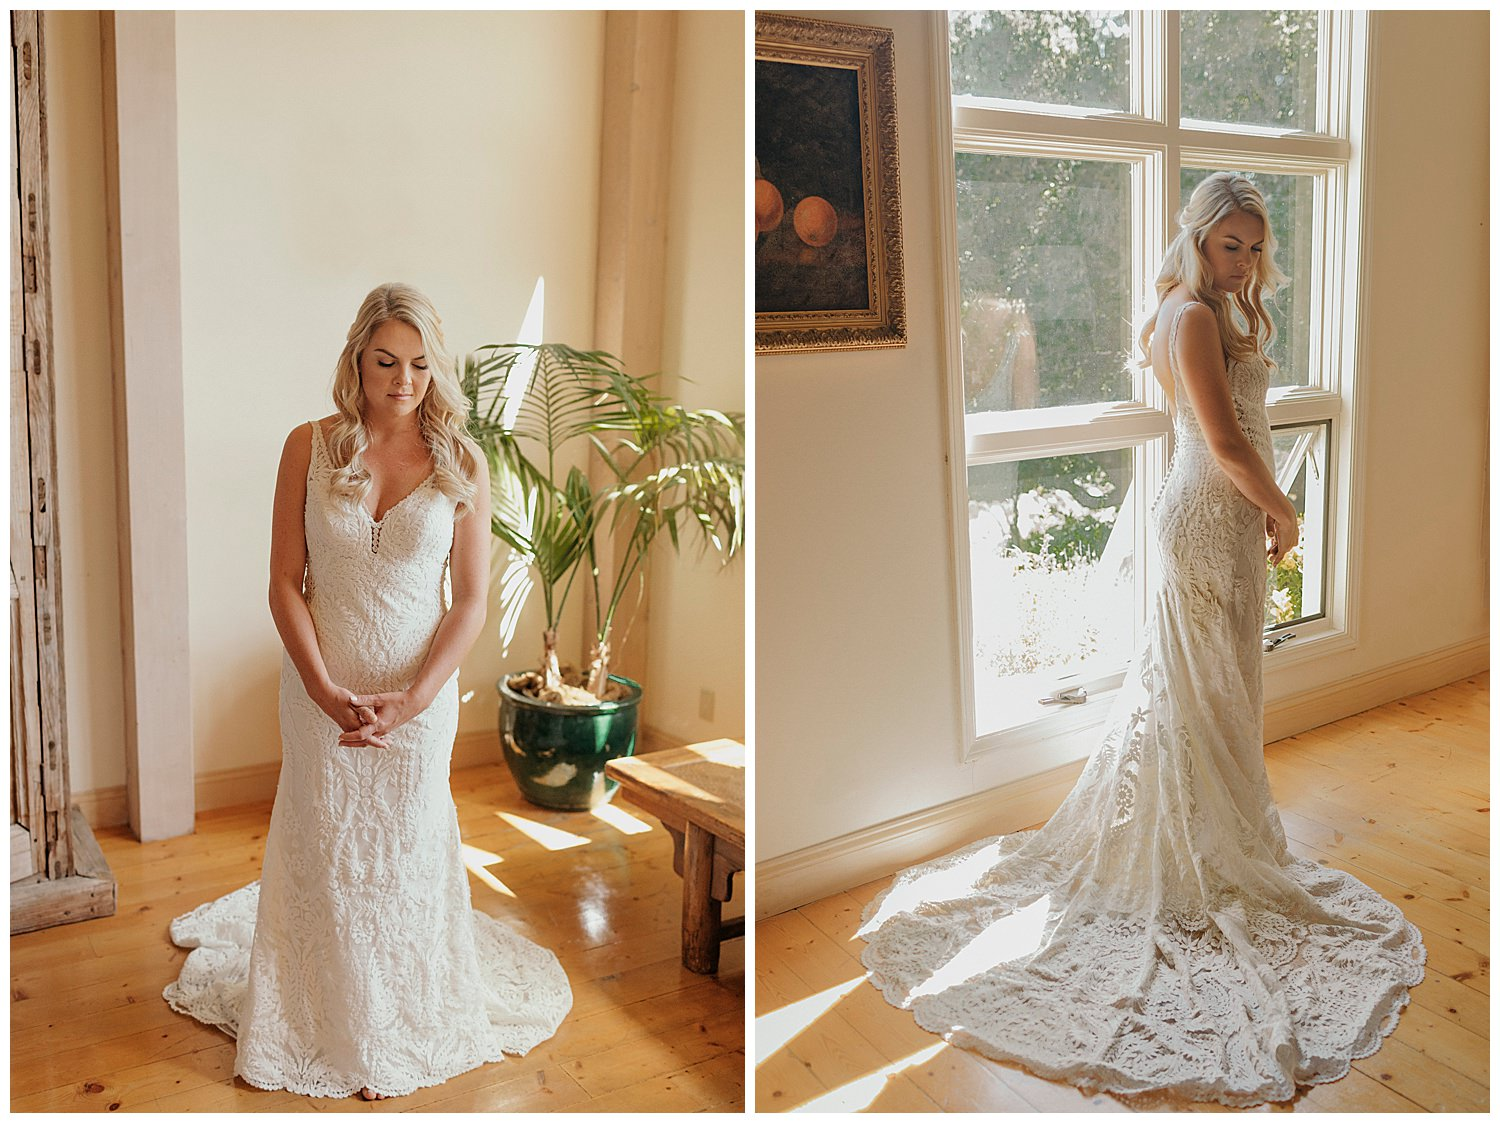 bridal pictures for santa barbara winery wedding